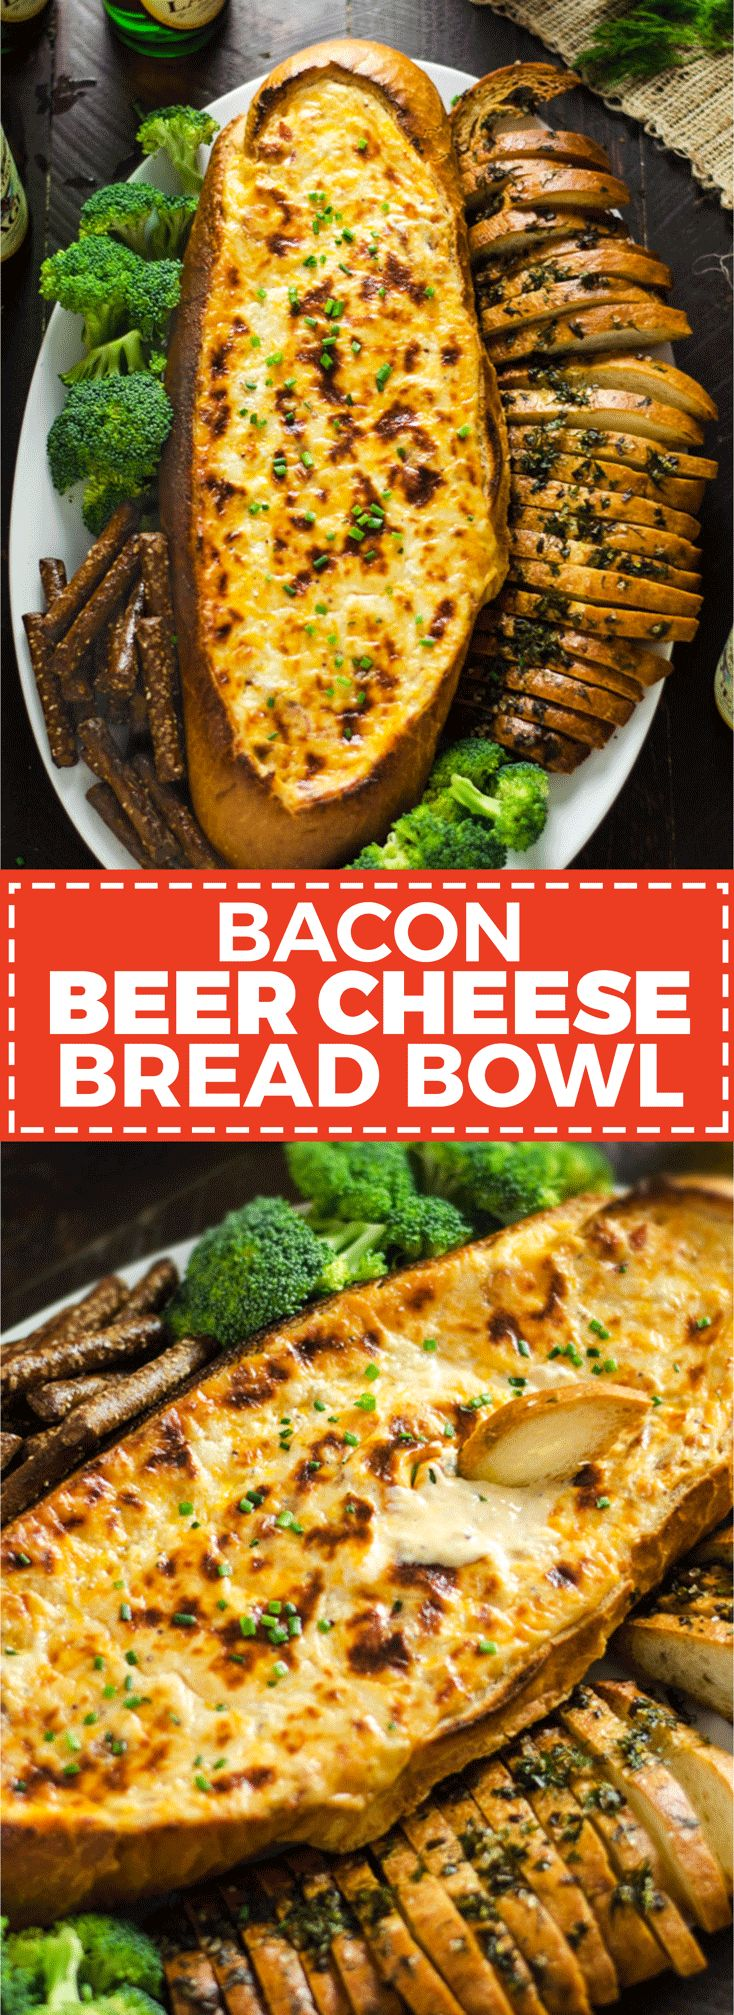 Bacon Beer Cheese Bread Bowl. A flavorful, fondue-like beer cheese studded with crumbled bacon is baked inside of Italian bread and served with garlic and herb crispy bread slices. It's the perfect easy-to-make snack for your Super Bowl party.